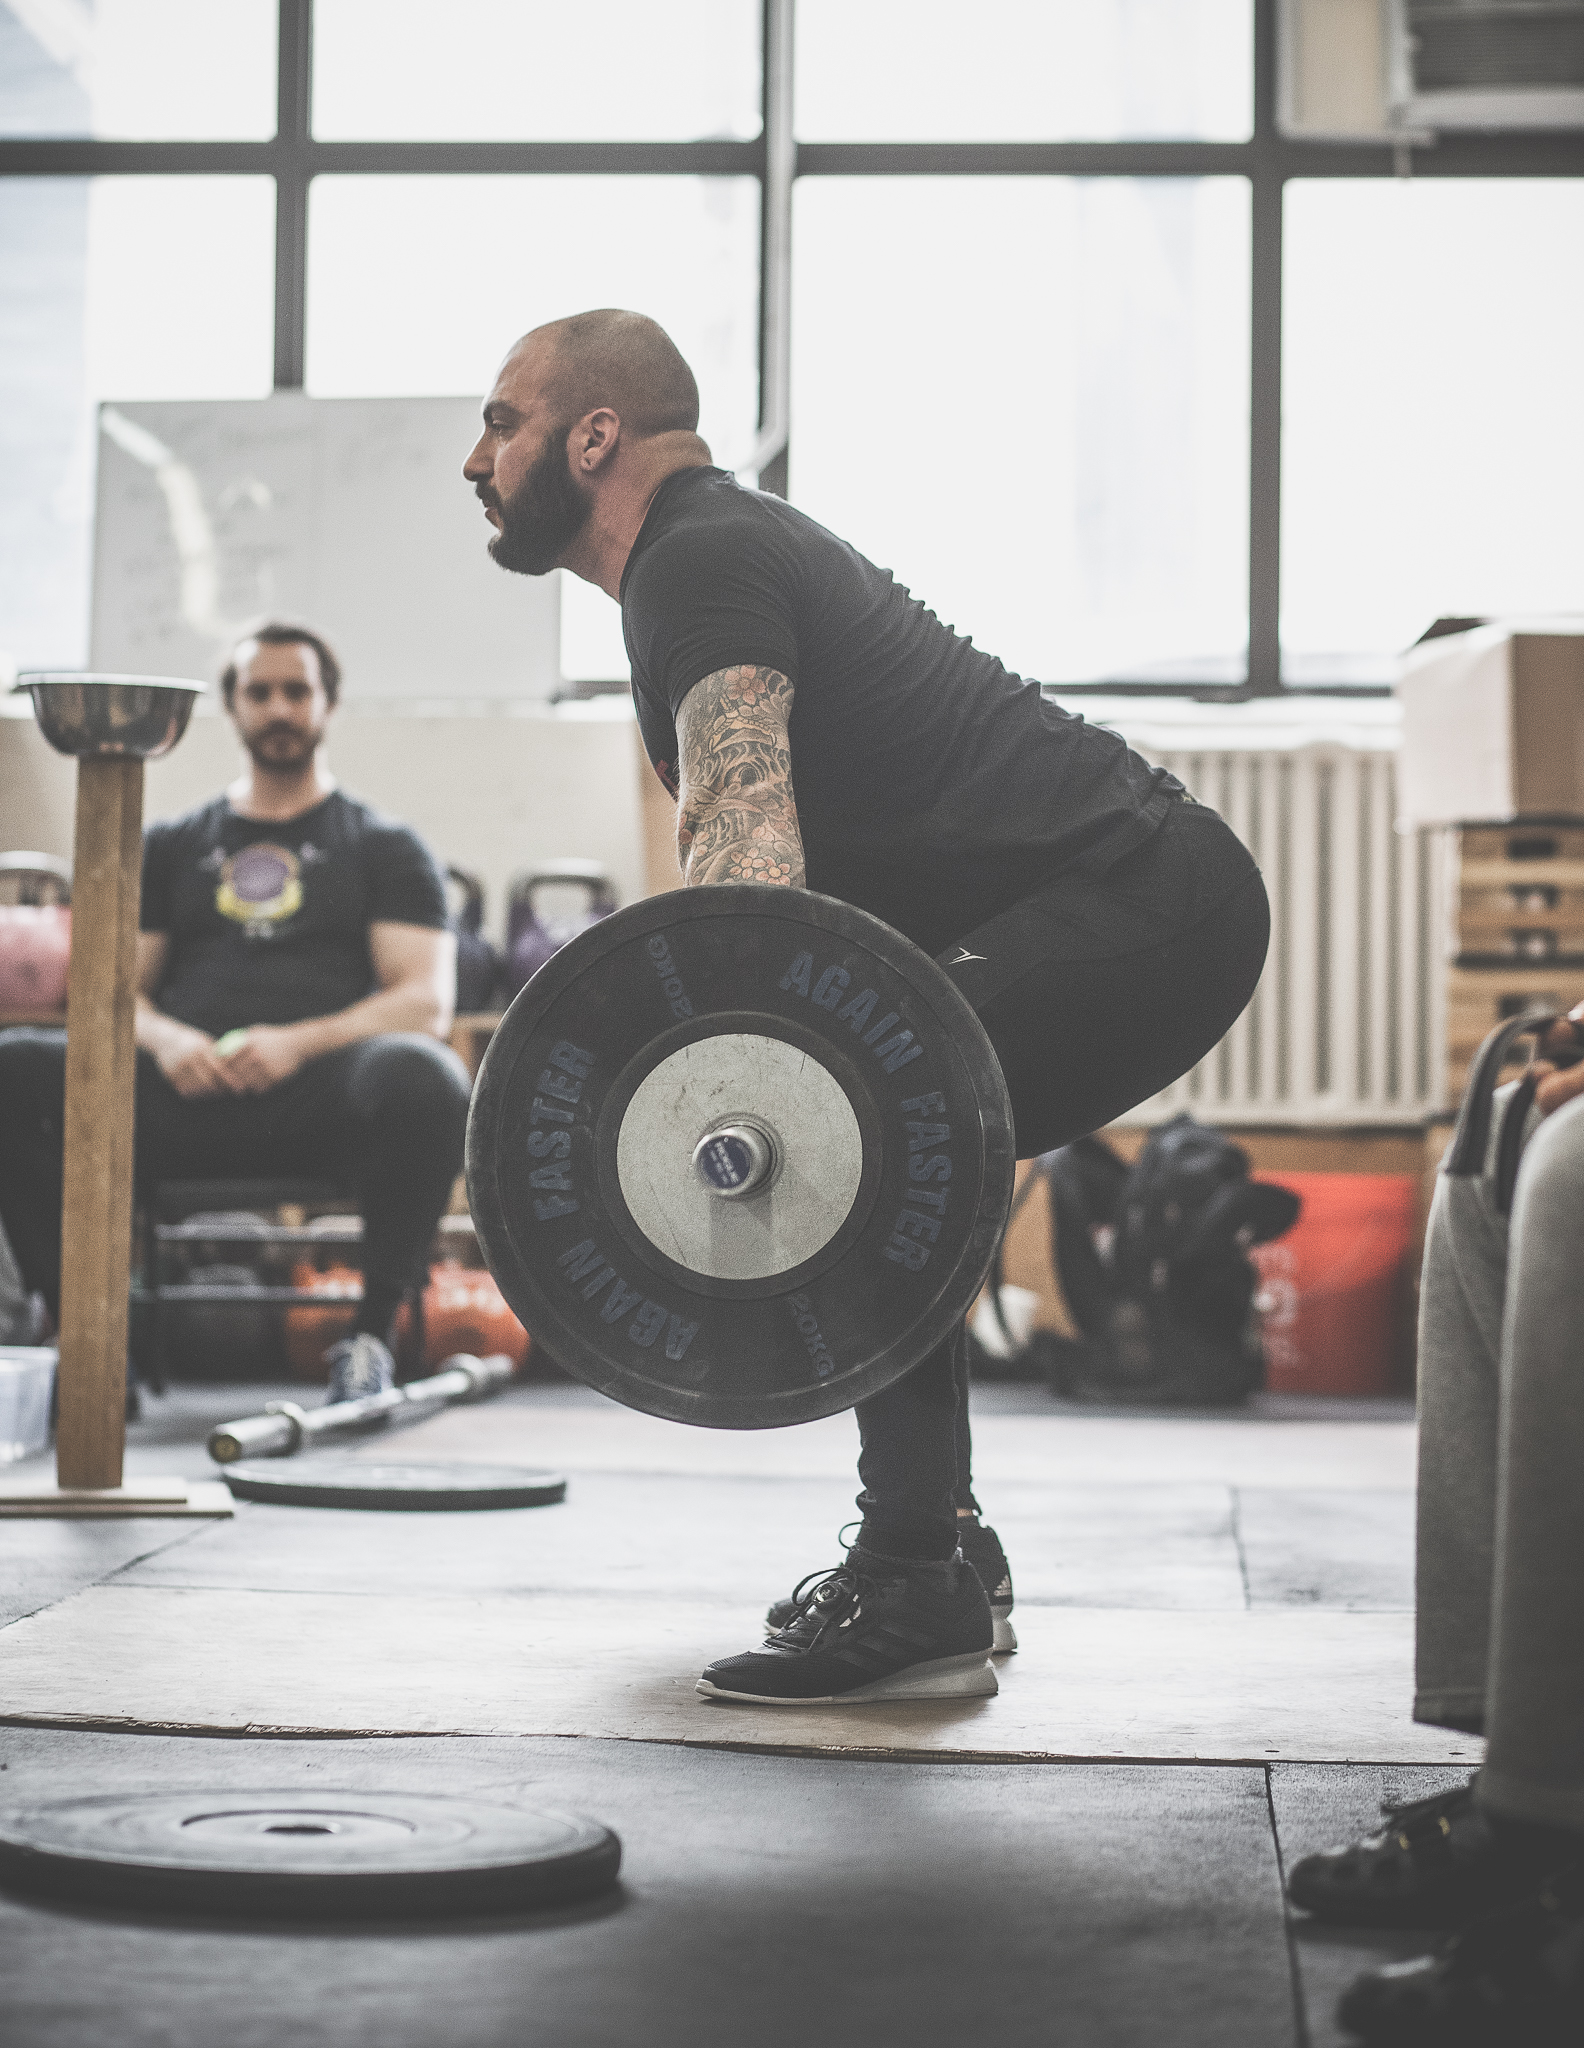 james-wright-weightlifting-coach-31.jpg